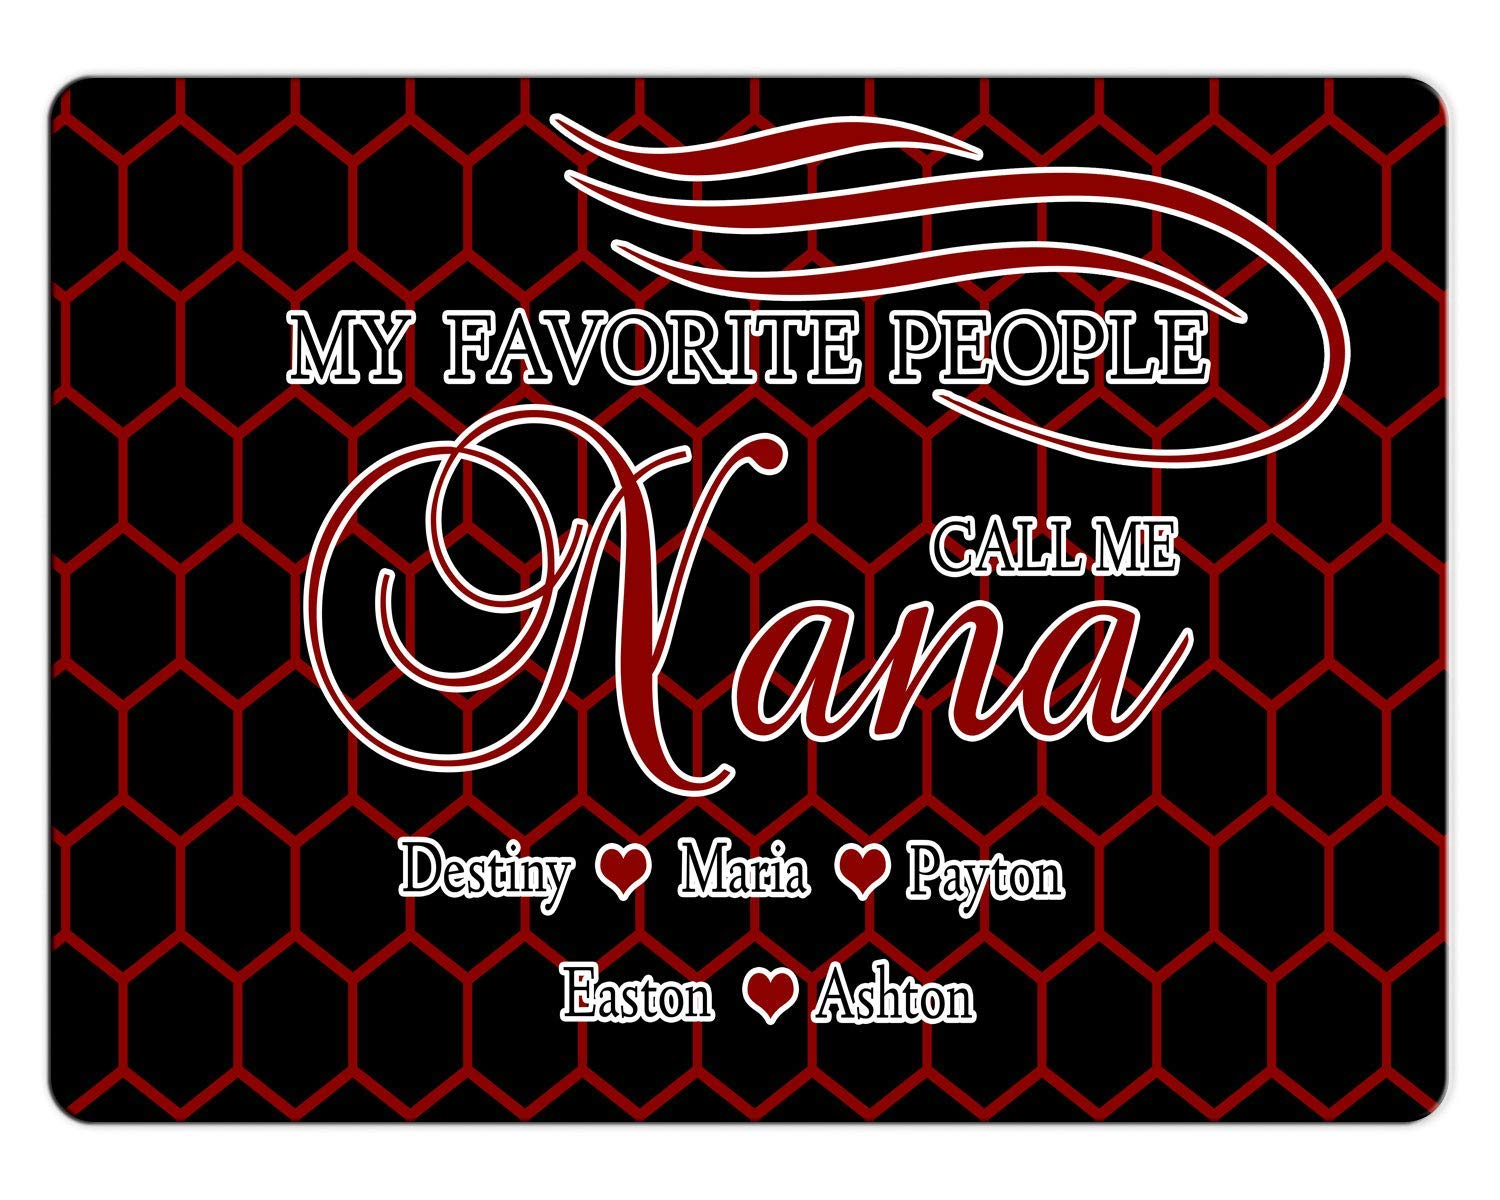 BRGiftShop Personalize Your Own Custom Name My Favorite People Call Me Nana 11x15 Glass Cutting Board